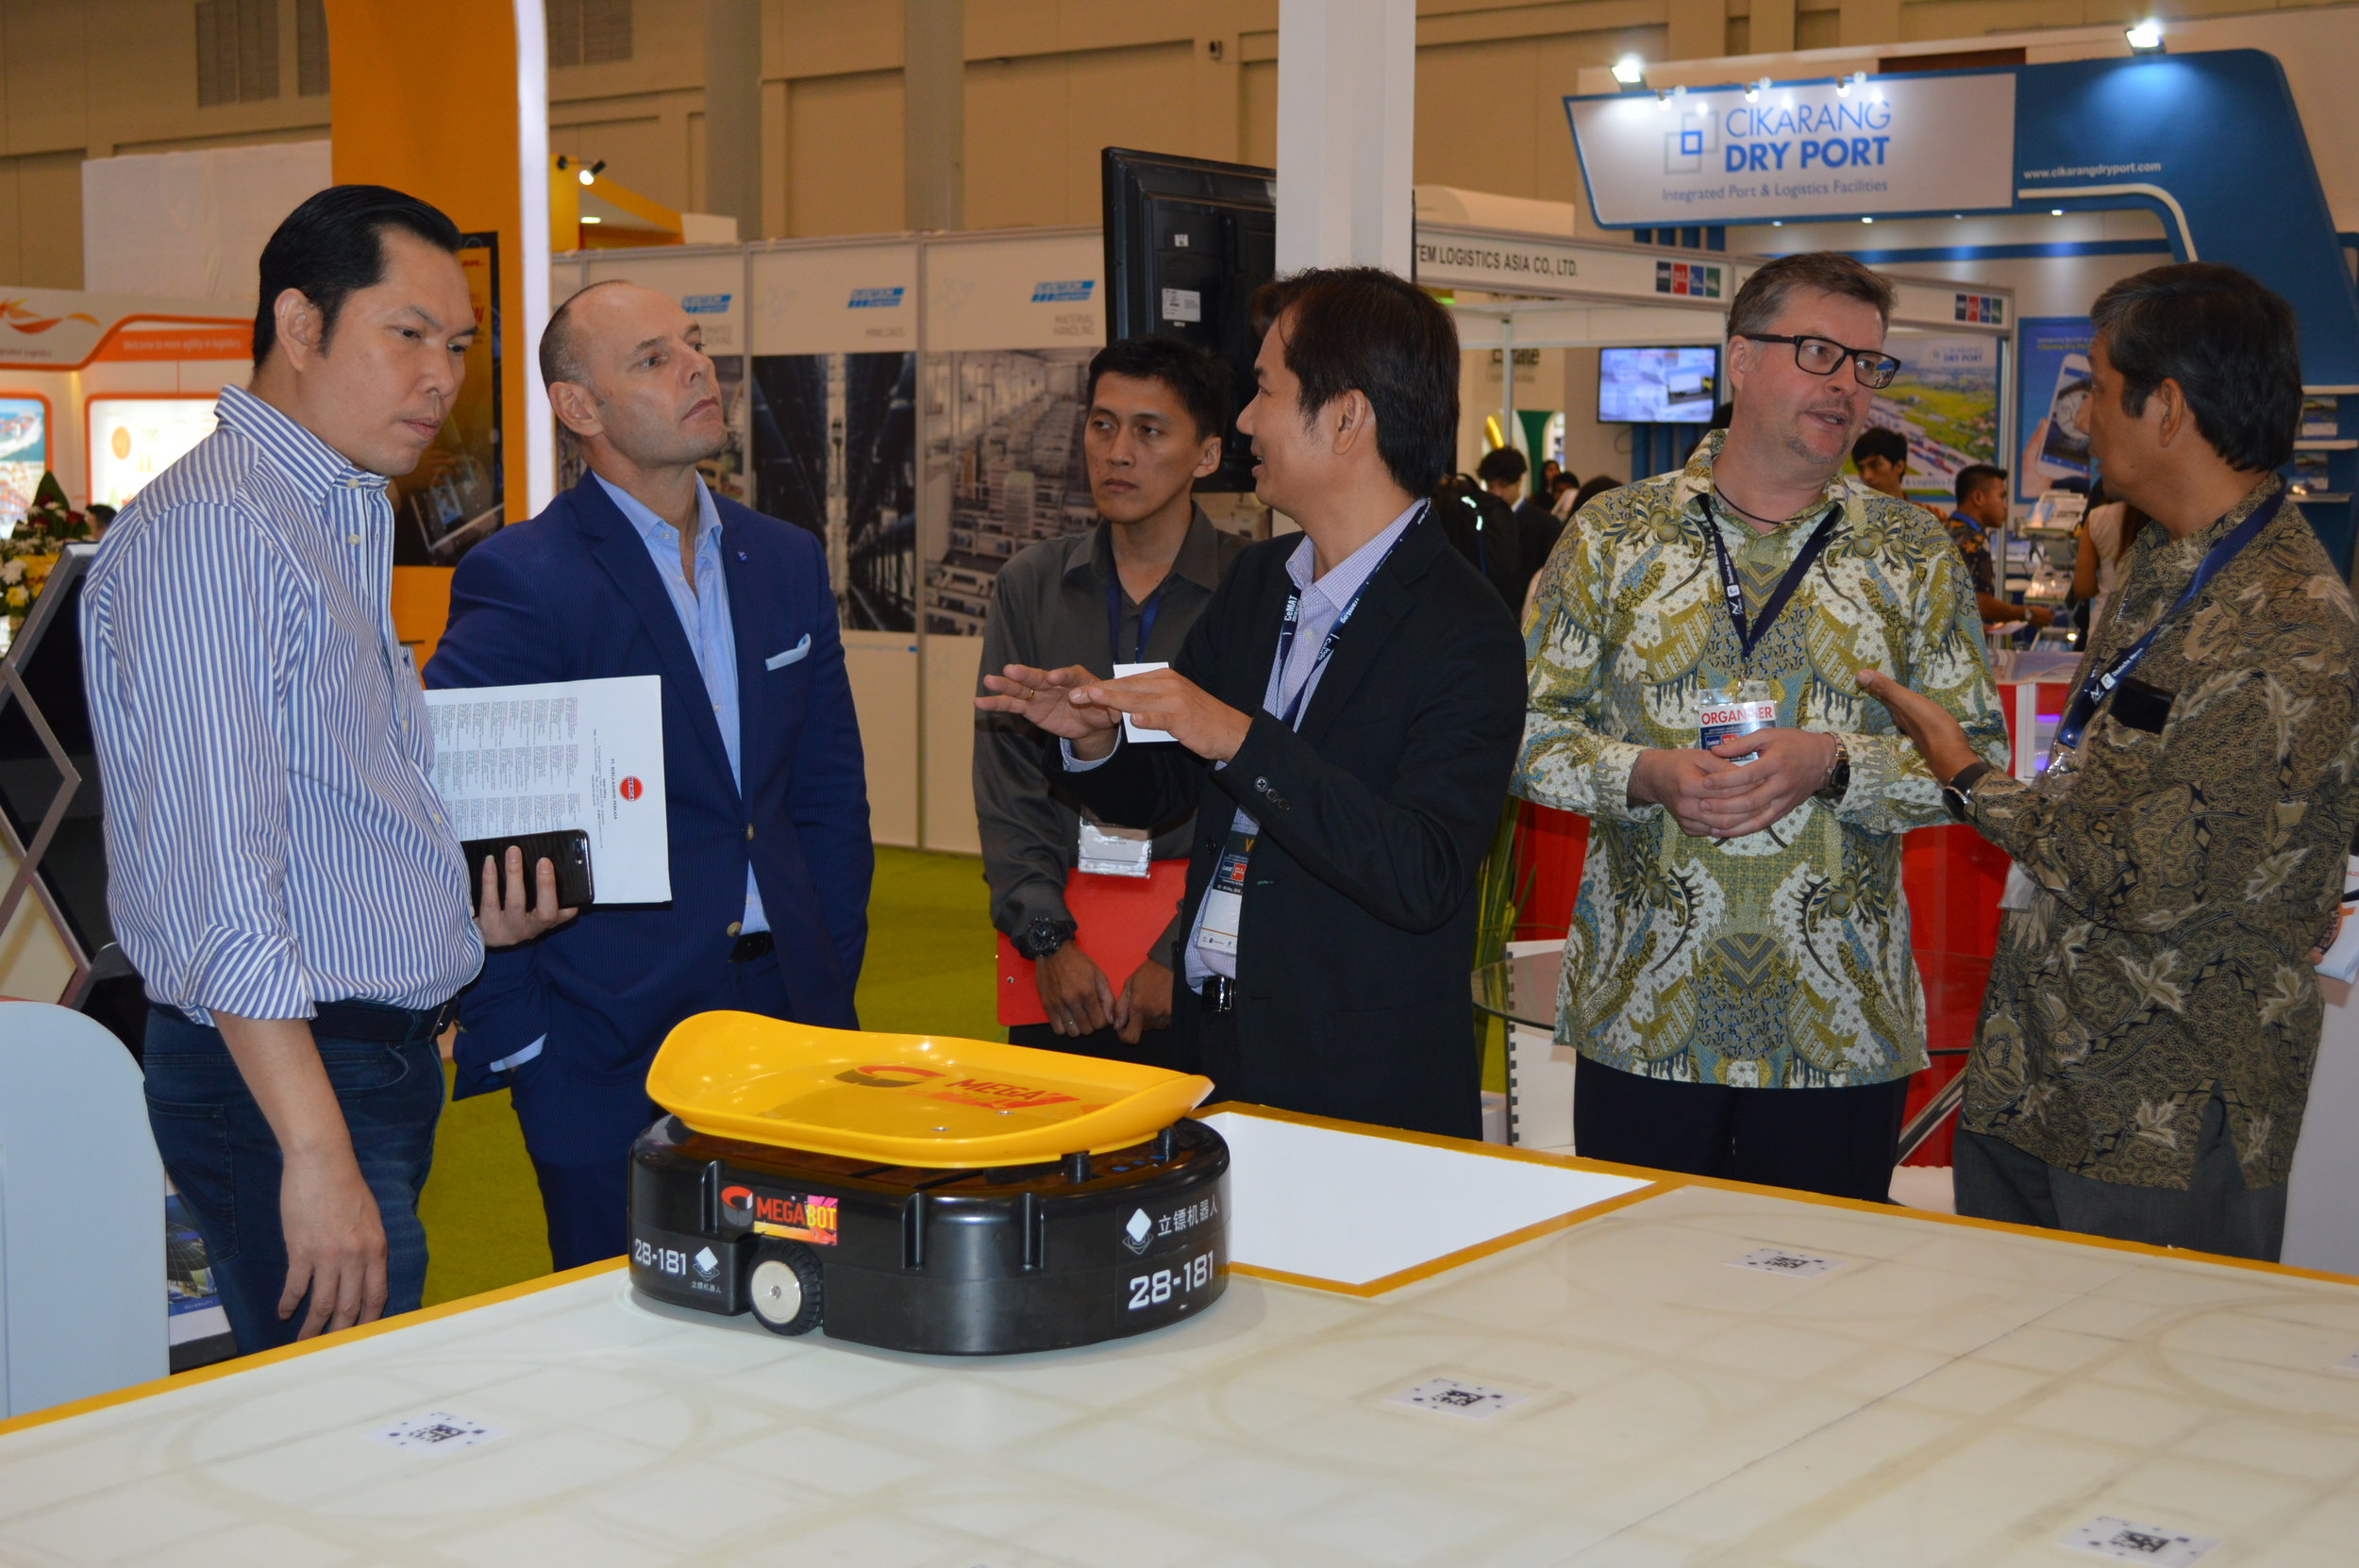 Cheng Hua representative explaining to exhibitors about our new product  MegaBot  that is exhibited during Indonesia CeMAT South East Asia 02-06 May2018.